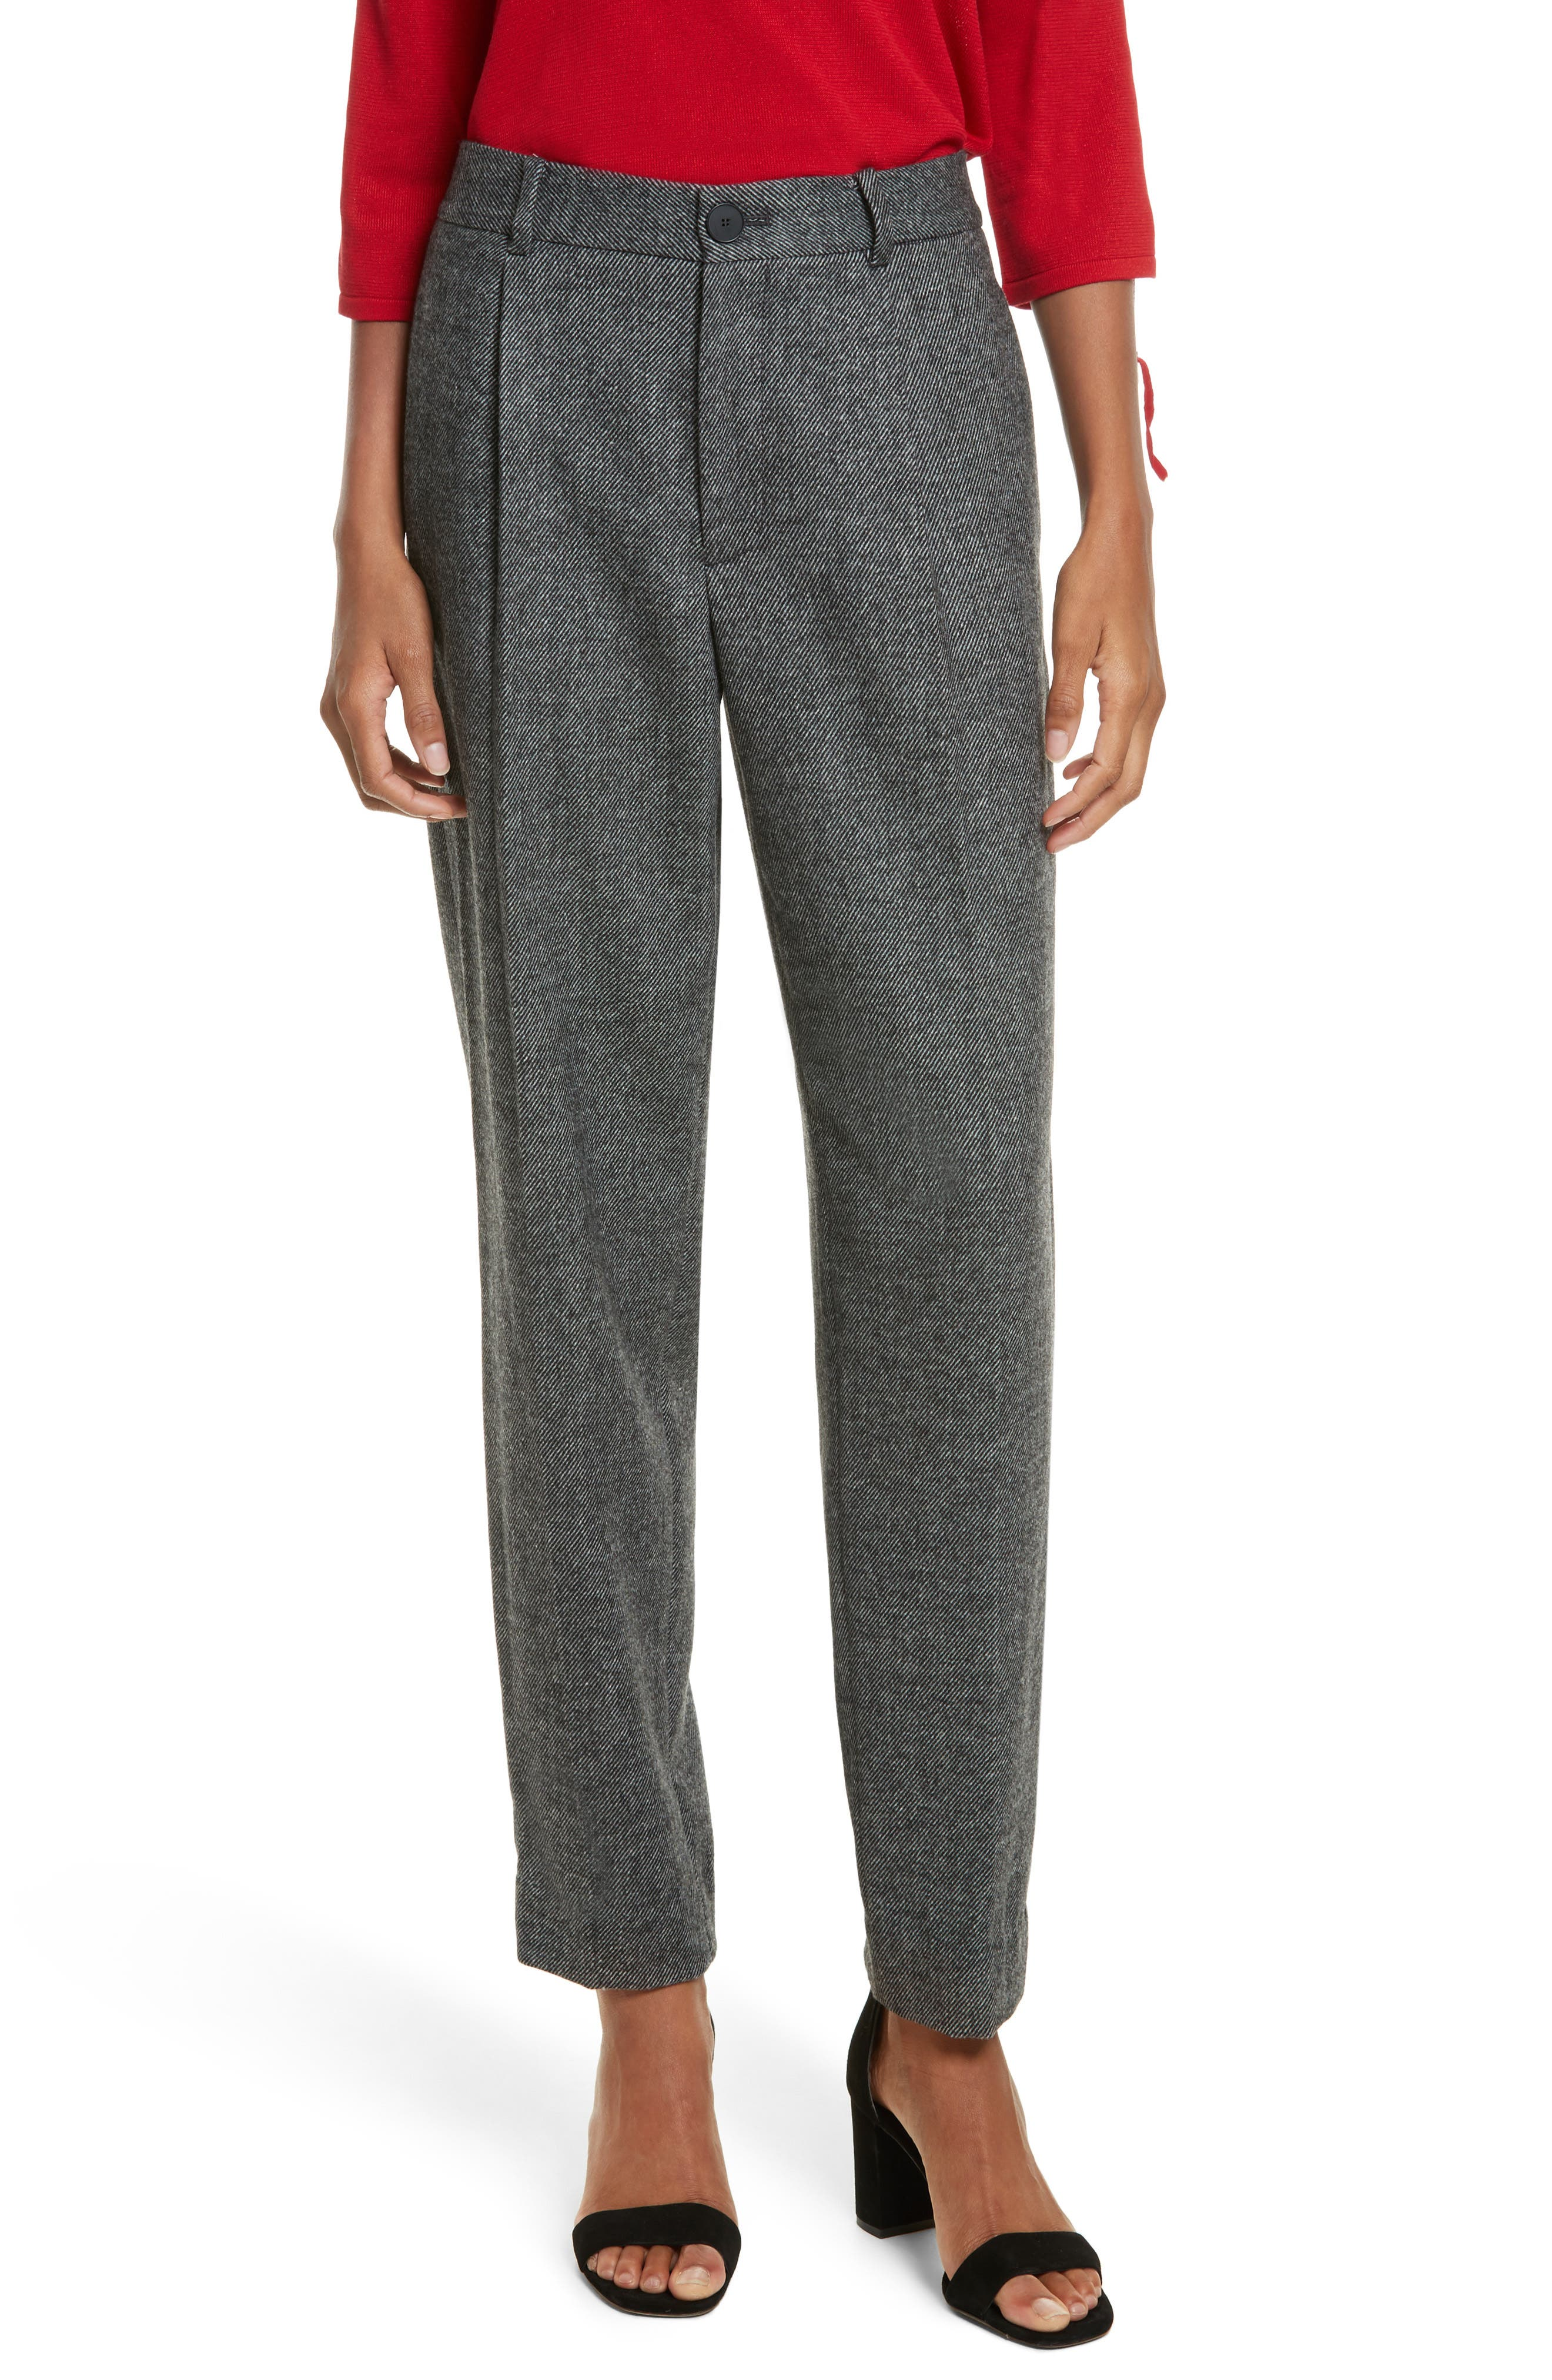 GREY Jason Wu Pleated Flannel Pants